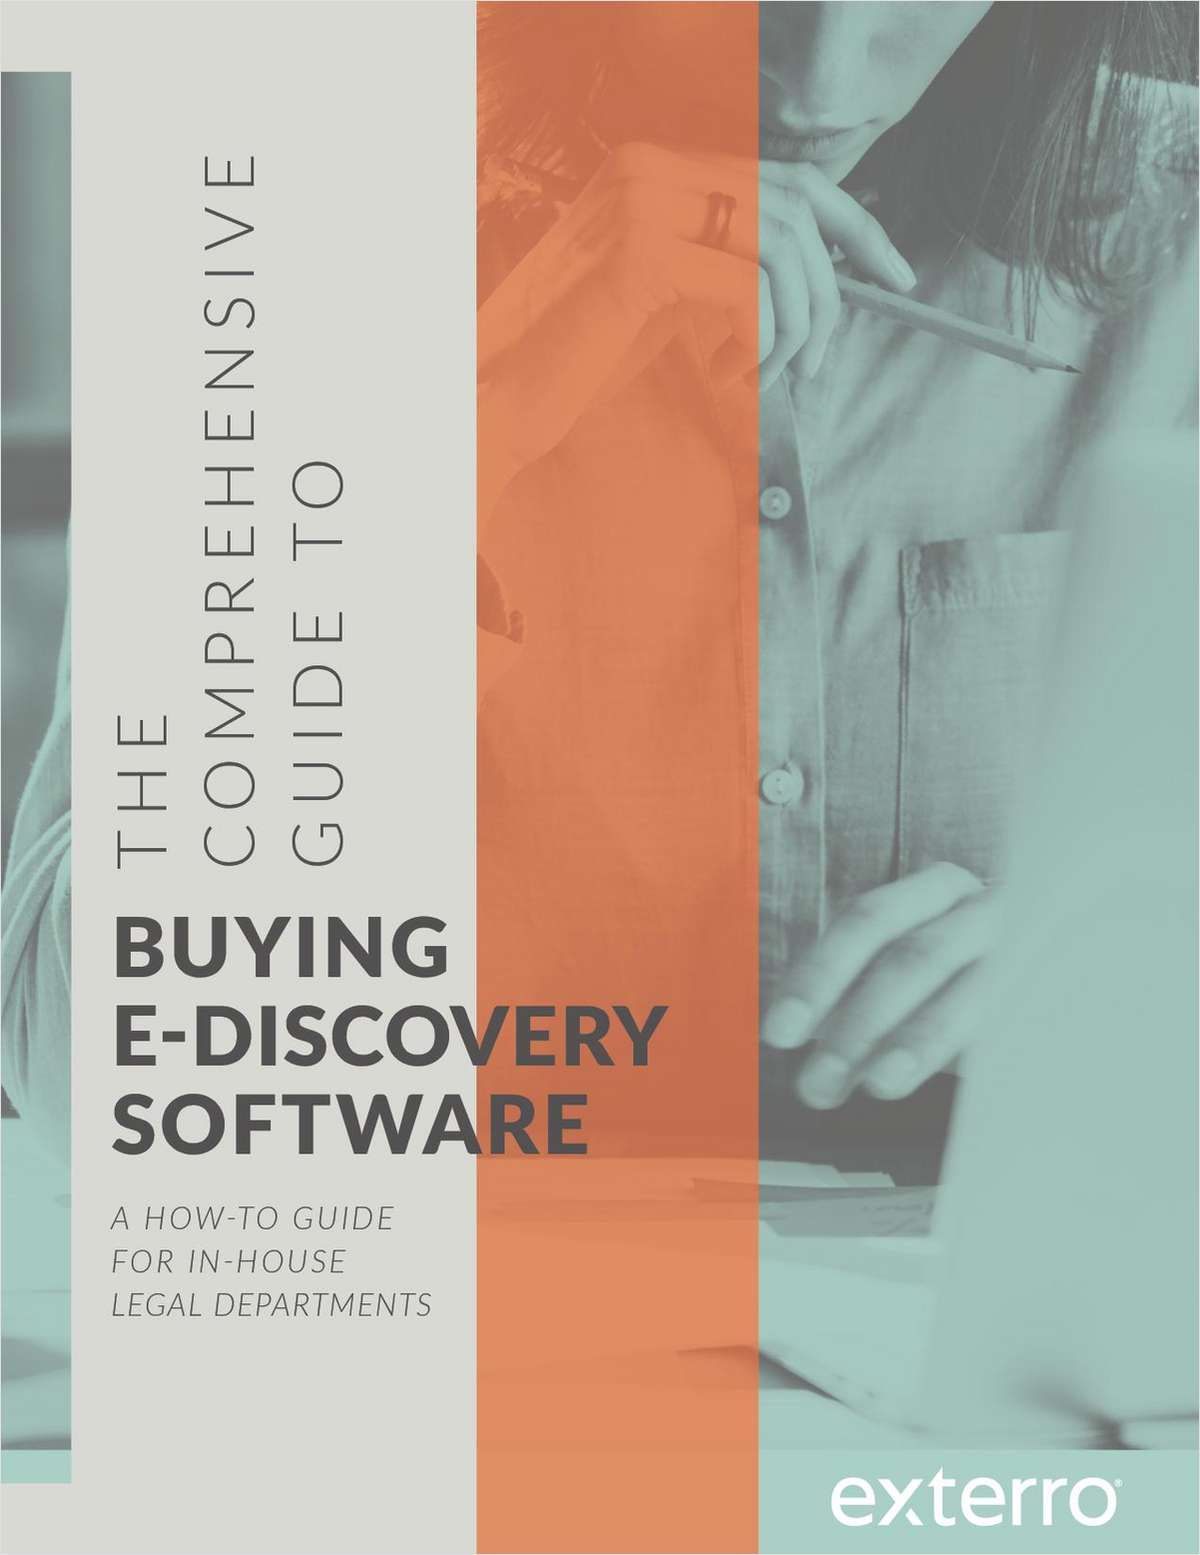 Not Your Traditional How-To Guide for Buying E-Discovery Software